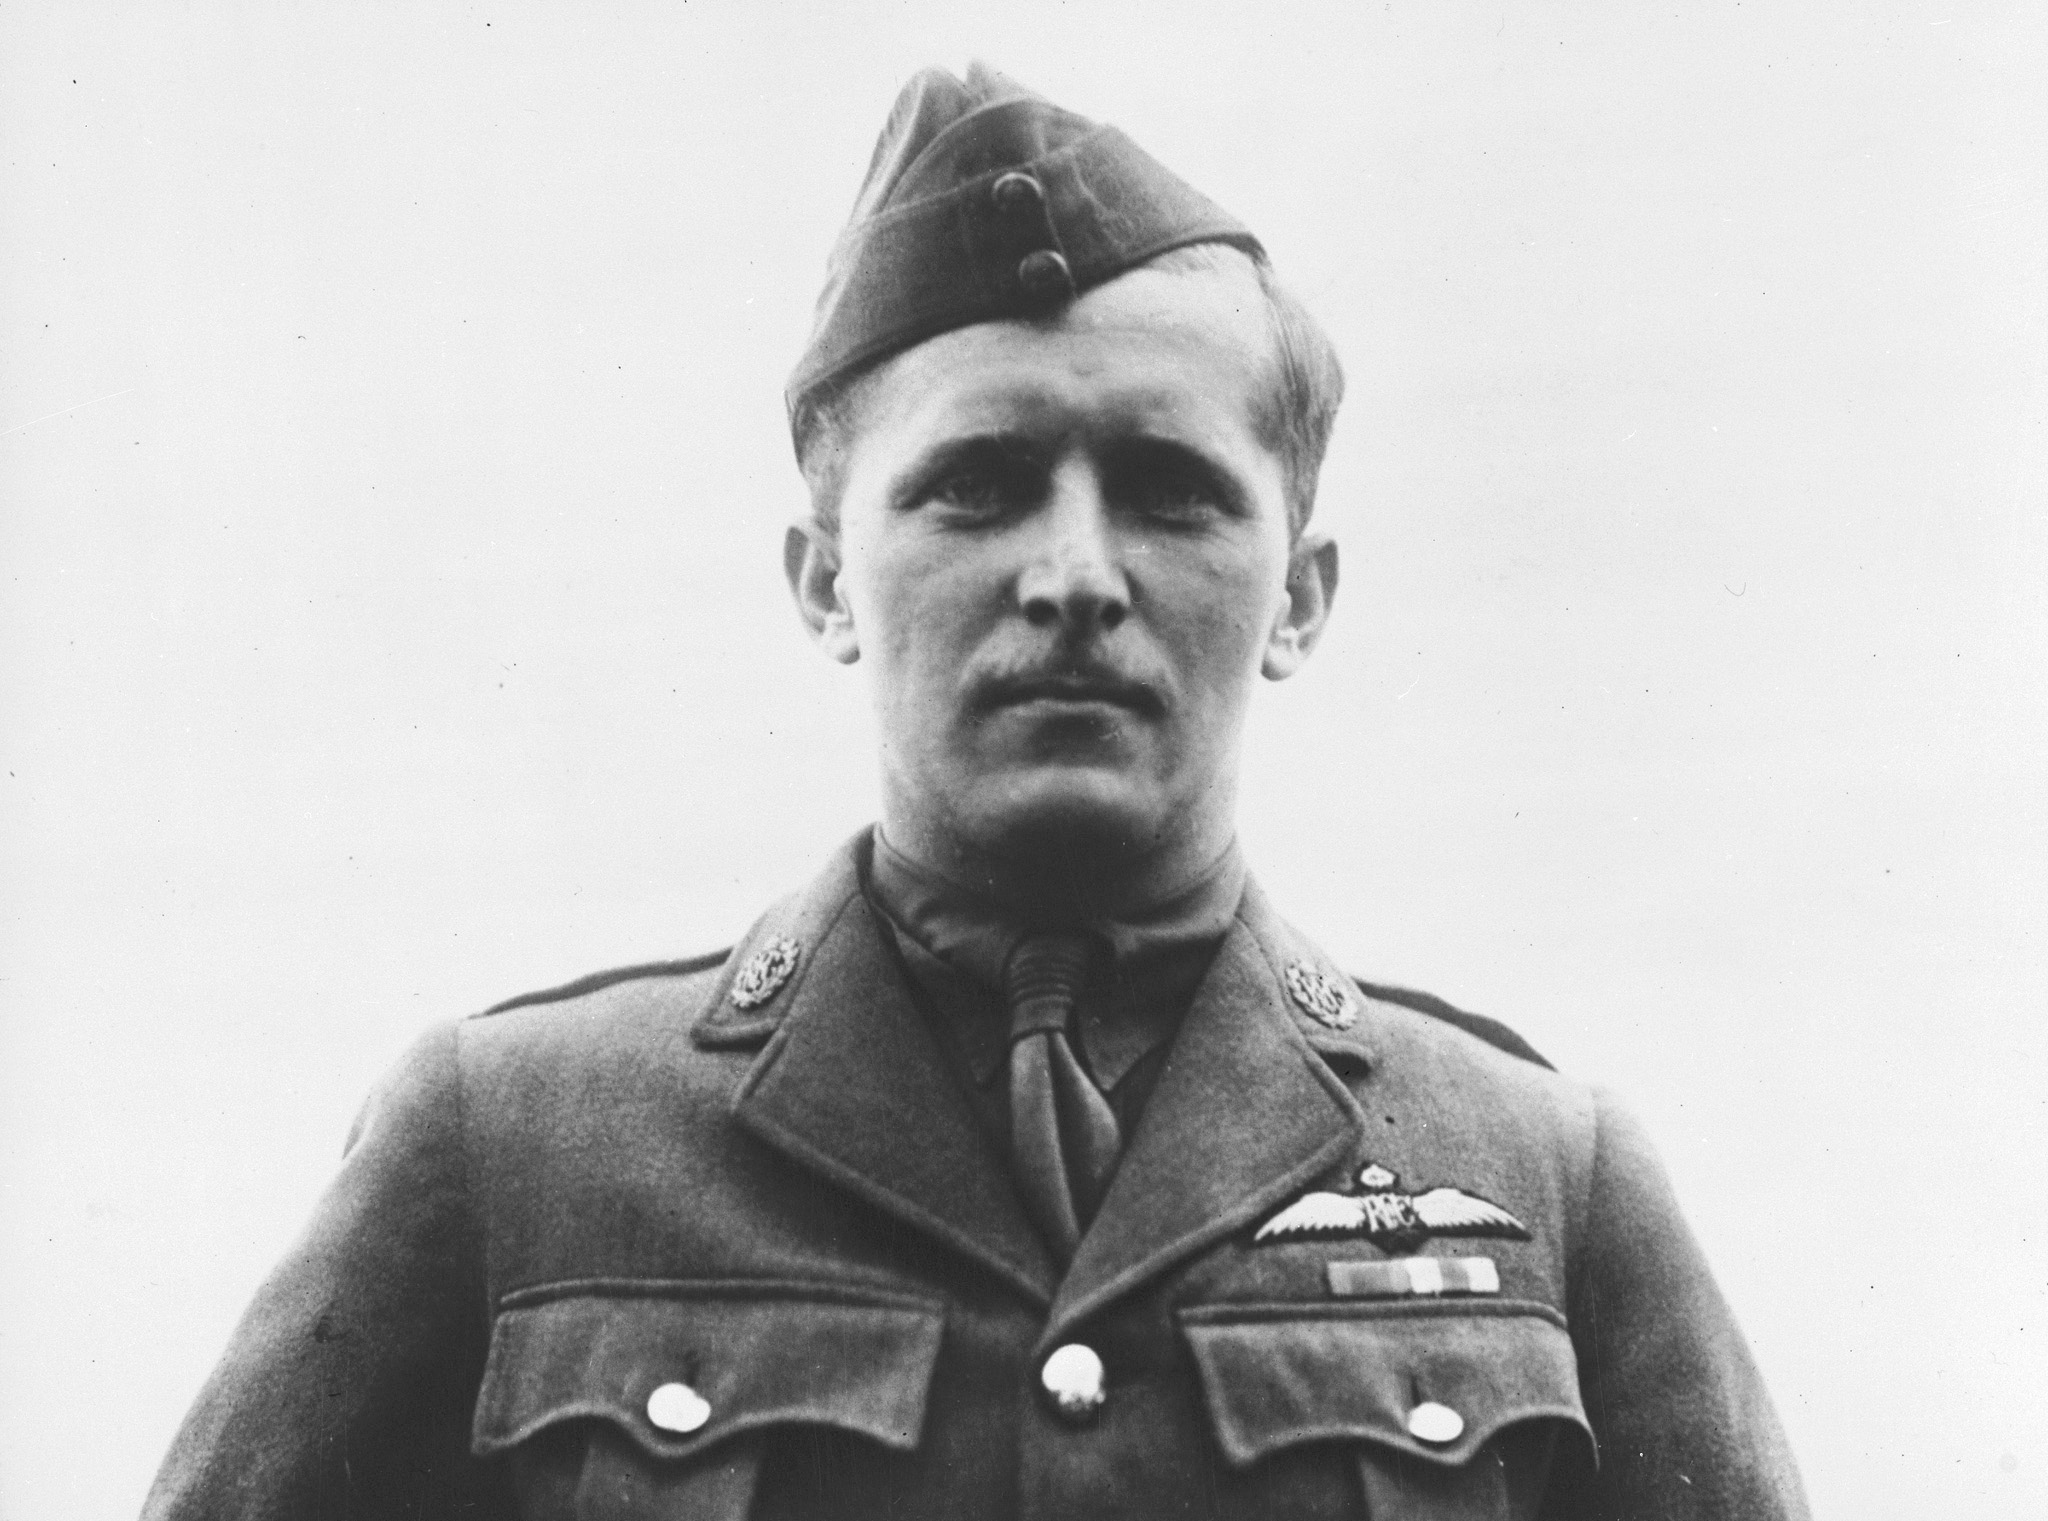 A photo of Captain William A. Bishop, taken on August 6, 1917, while he was with No. 60 Squadron. The photo was taken several days before London Gazette announcement that he had been awarded the Victoria Cross; it can be seen that he was wearing only the ribbons of the Distinguished Service Order and Military Cross at this time. PHOTO: DND